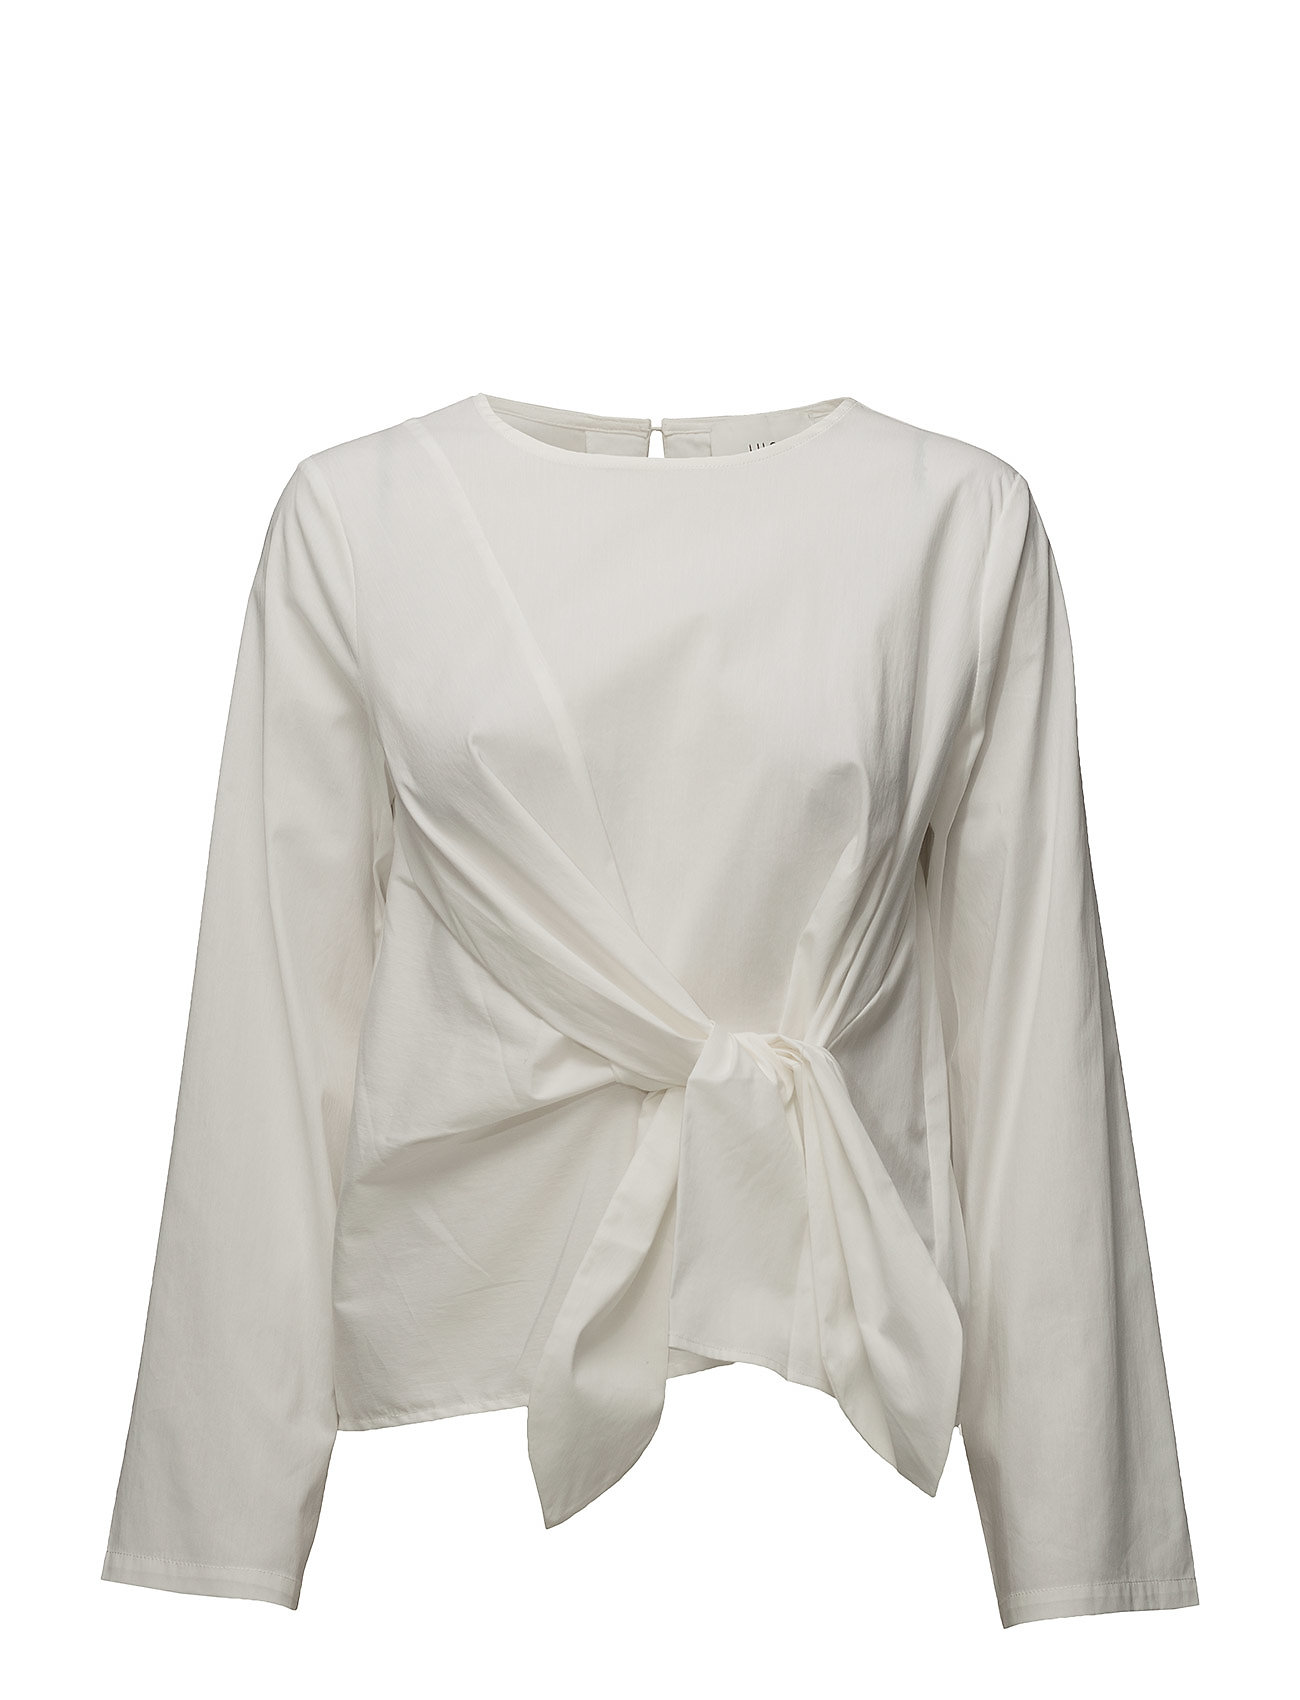 Image of Ady Ls Blouse (2872127619)